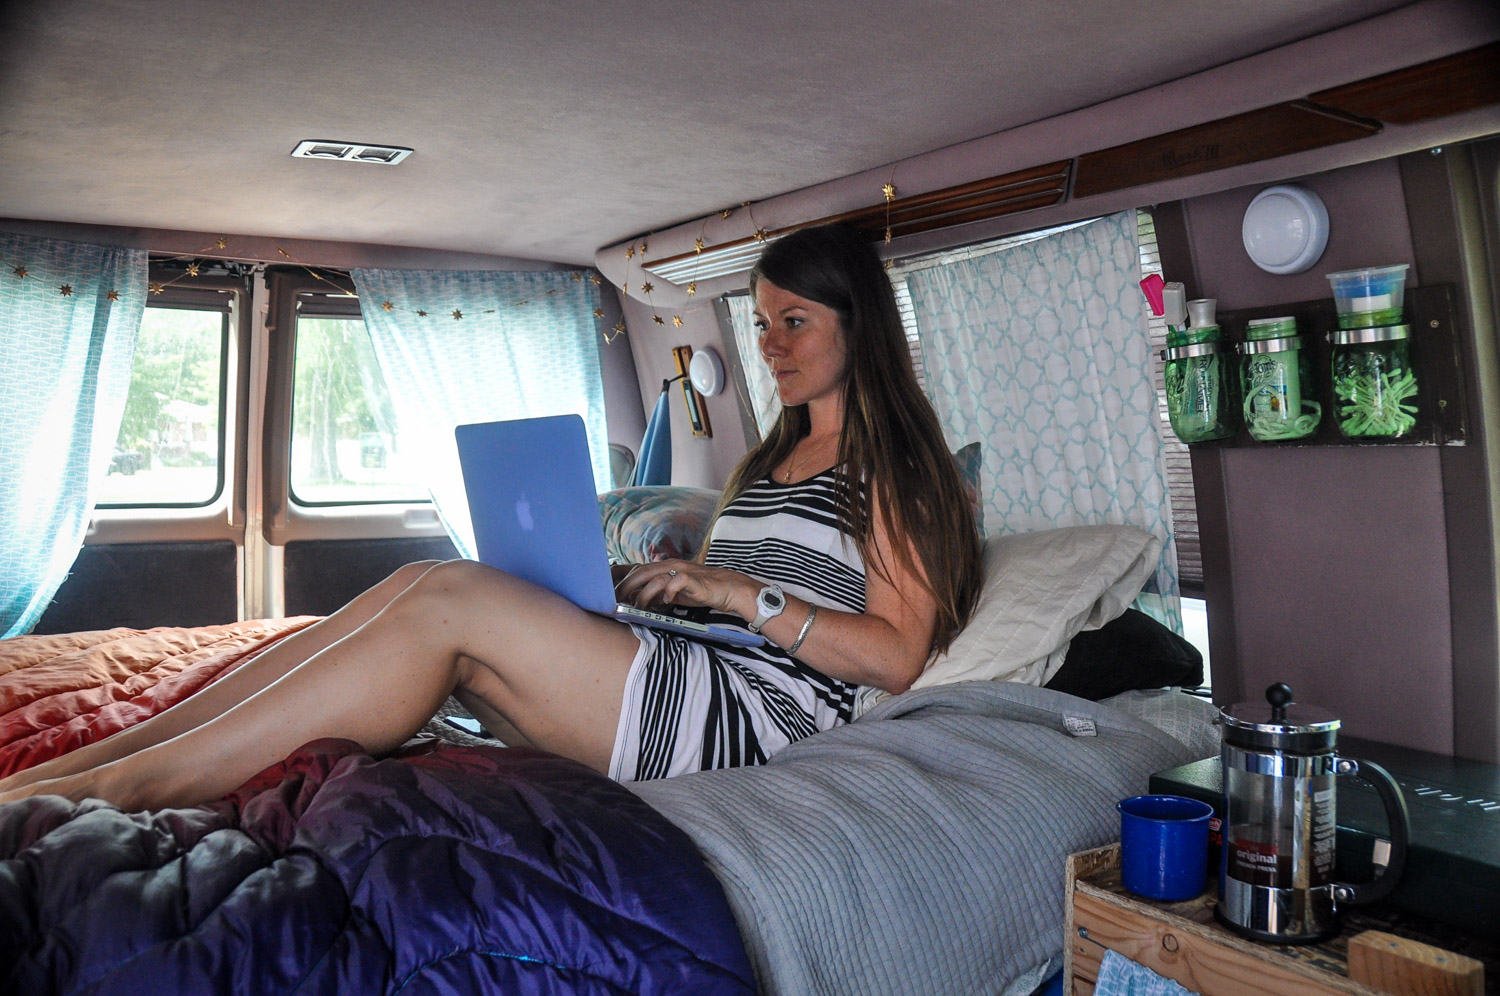 …or you can work from inside a van. The choice is yours!